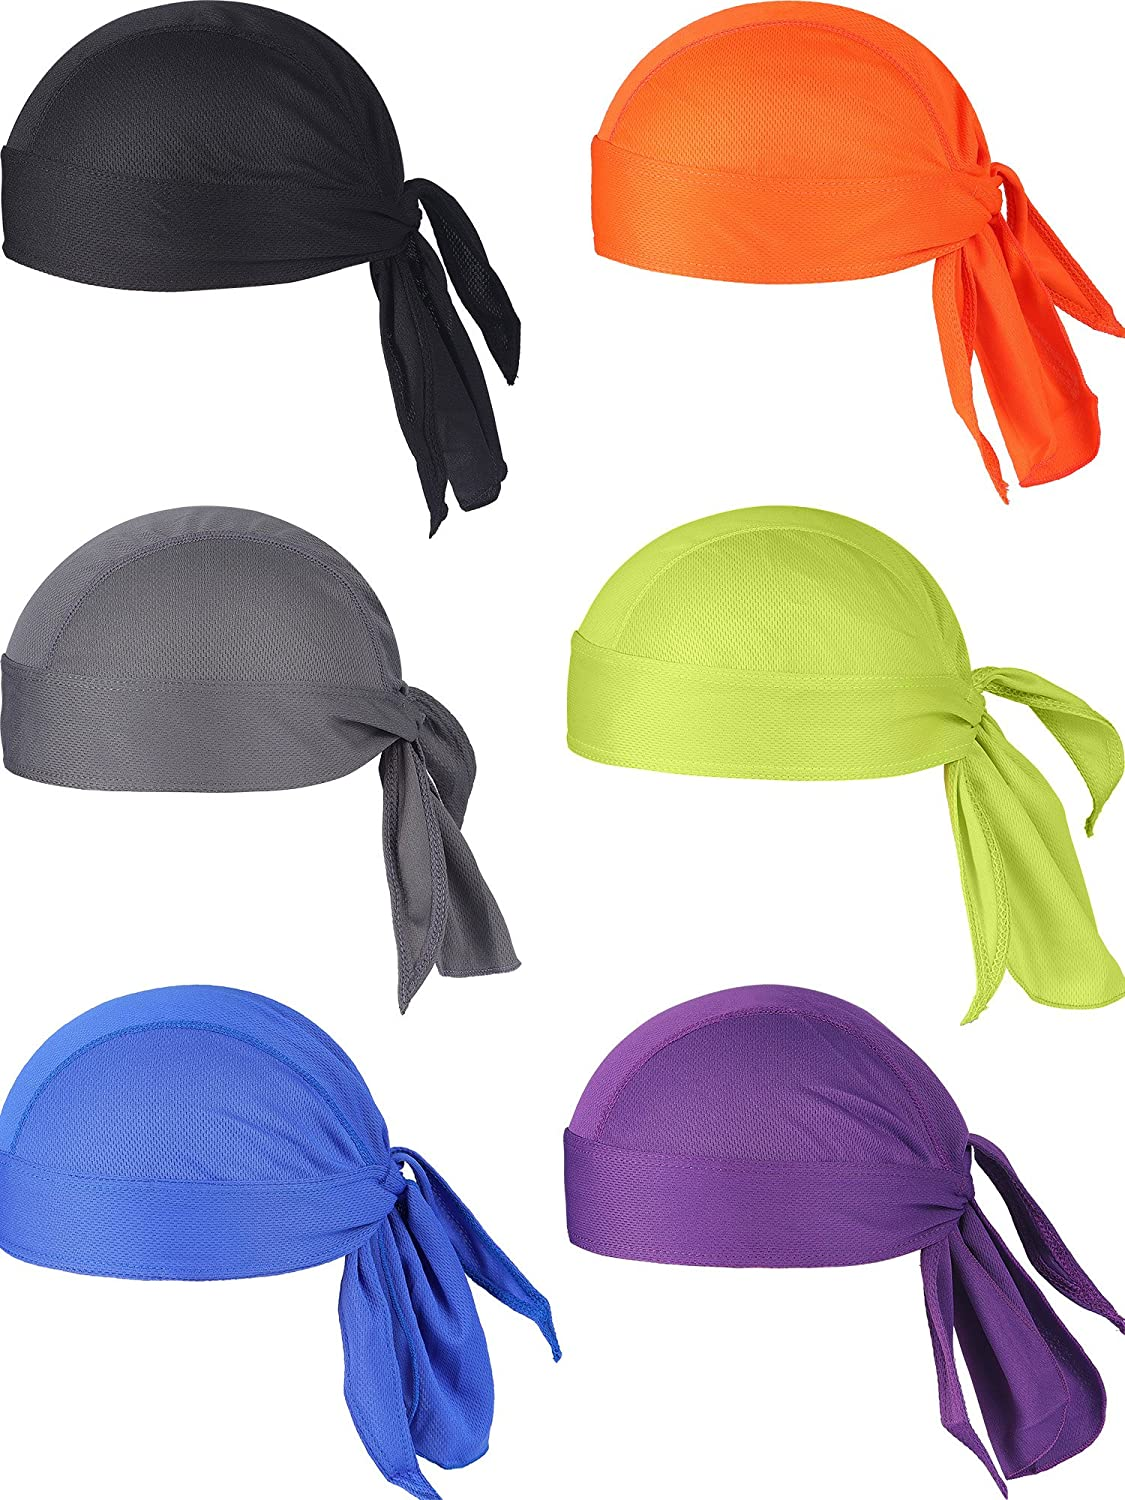 d7acff35108 Quantity  you will receive a package of 6 pieces sweat wicking beanie cap  hat in different colors. Unique design  sun protection quick dry breathable  design ...